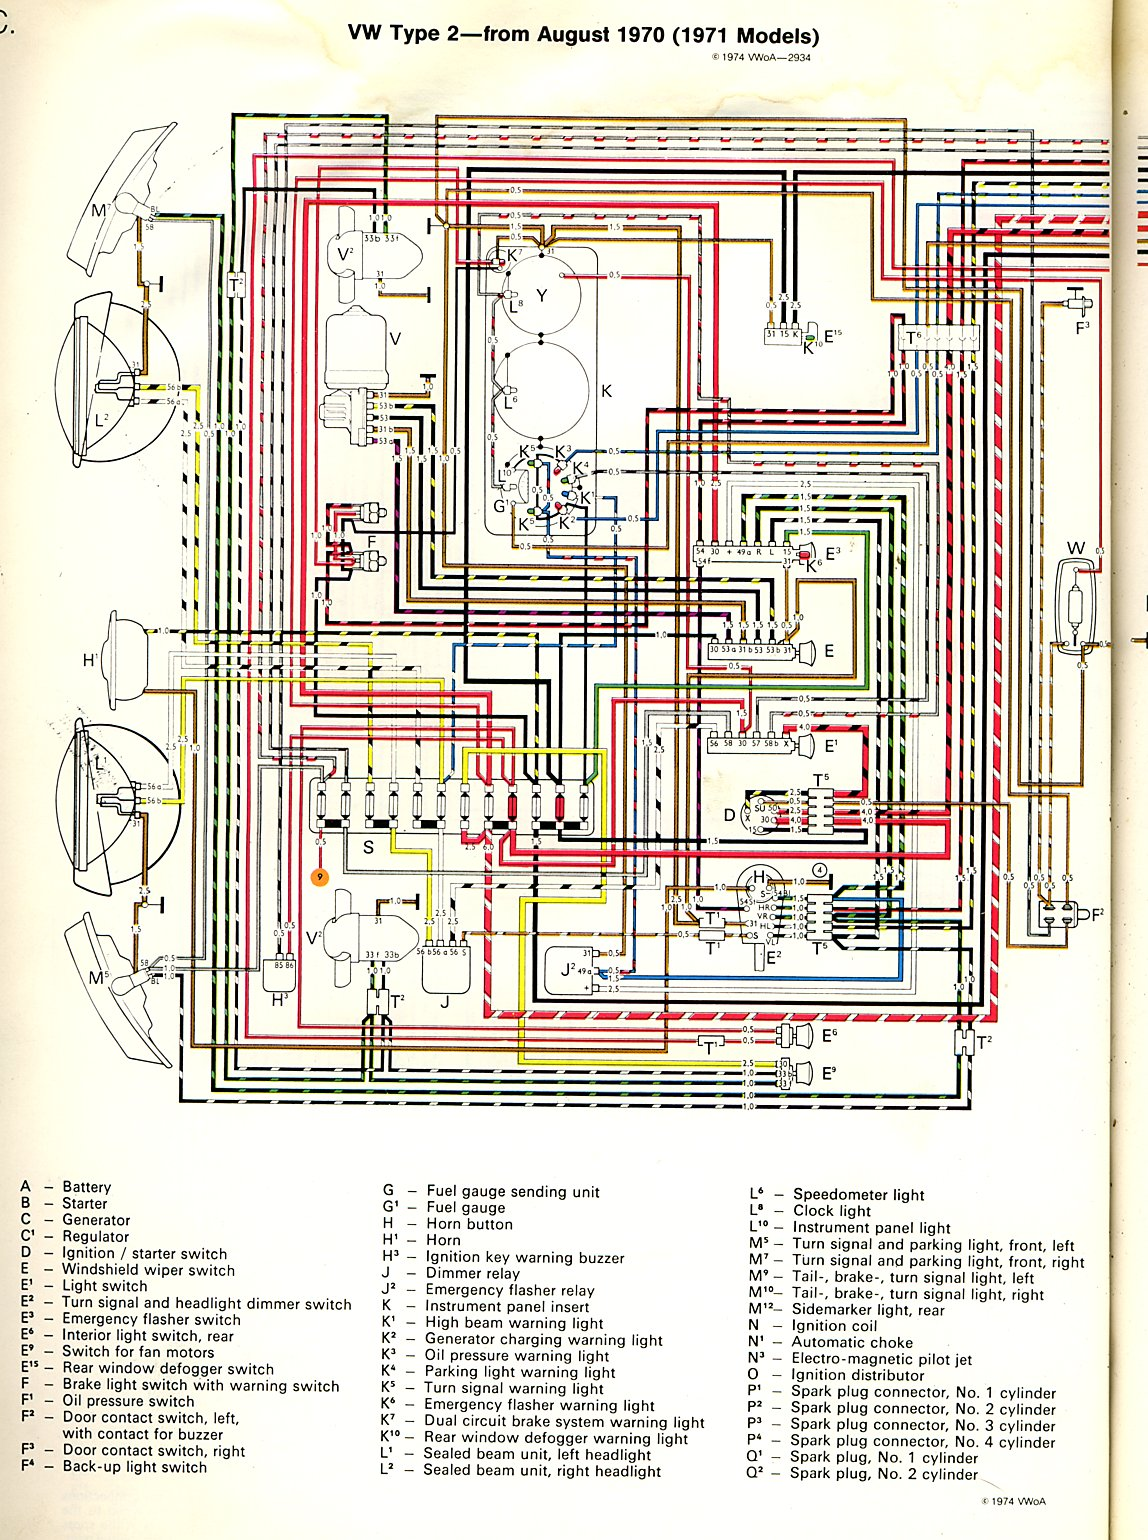 1971 Gmc Truck Wiring Diagram Libraries For Vw Schematic Diagrams73 Bus Diagrams Simple